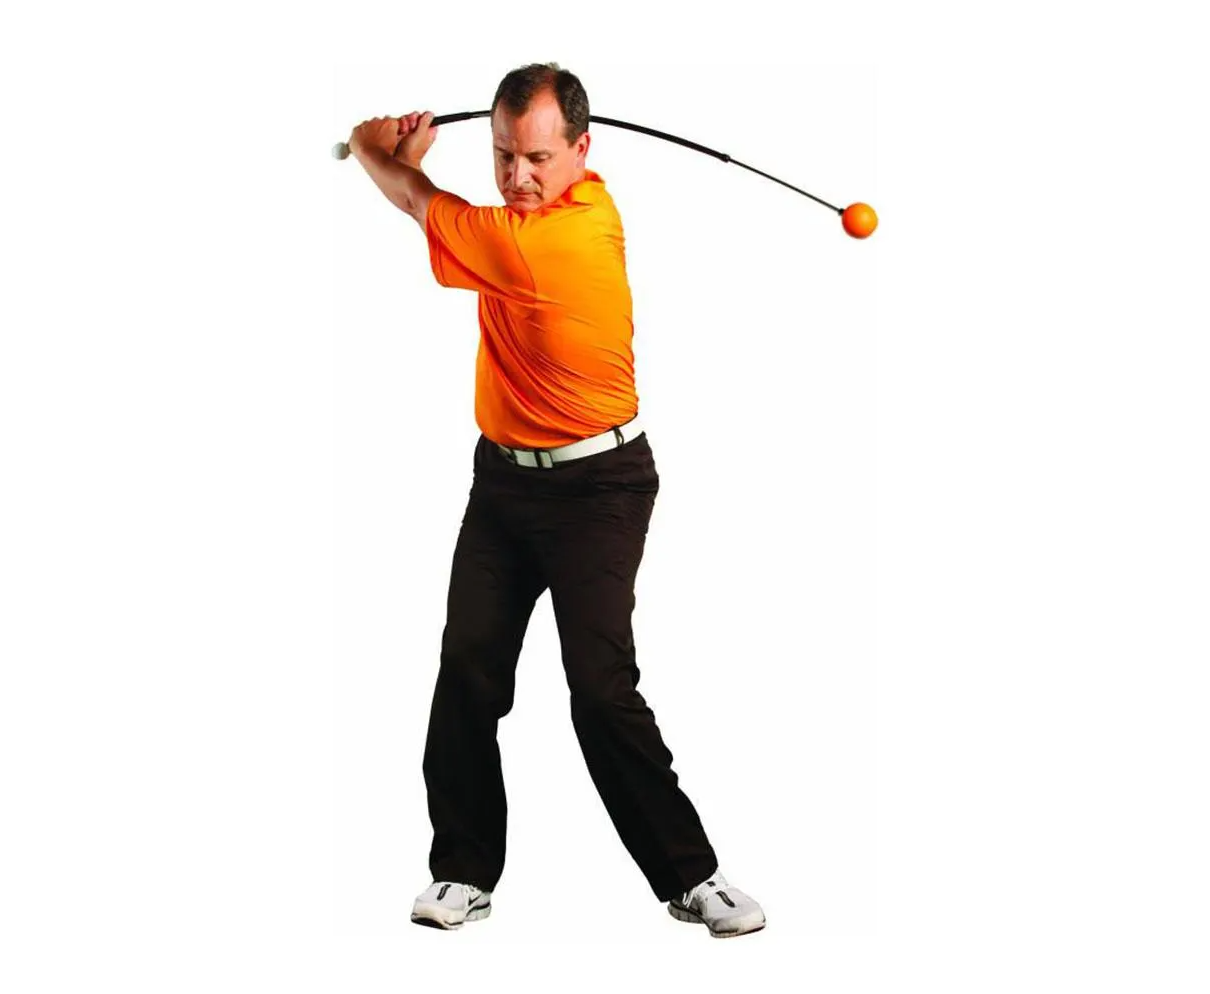 Golfer starting practice swing withe the Orange Whip trainer